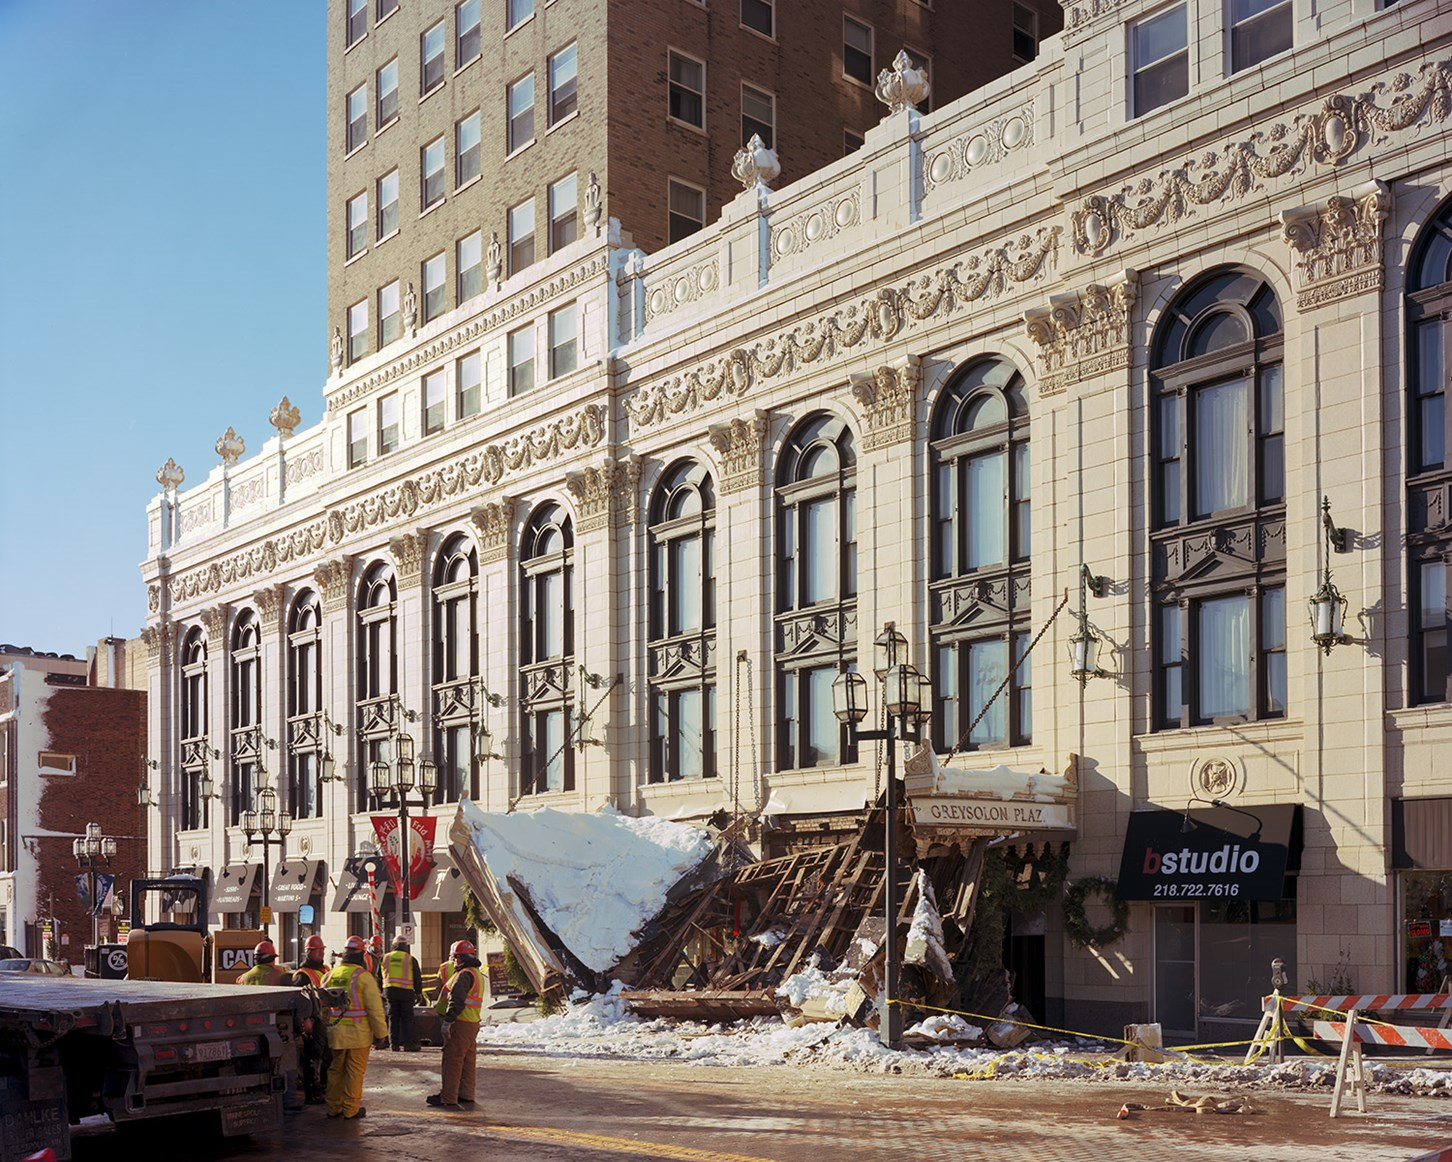 Greysolon Plaza Collapse, Duluth, Minnesota, December 2013